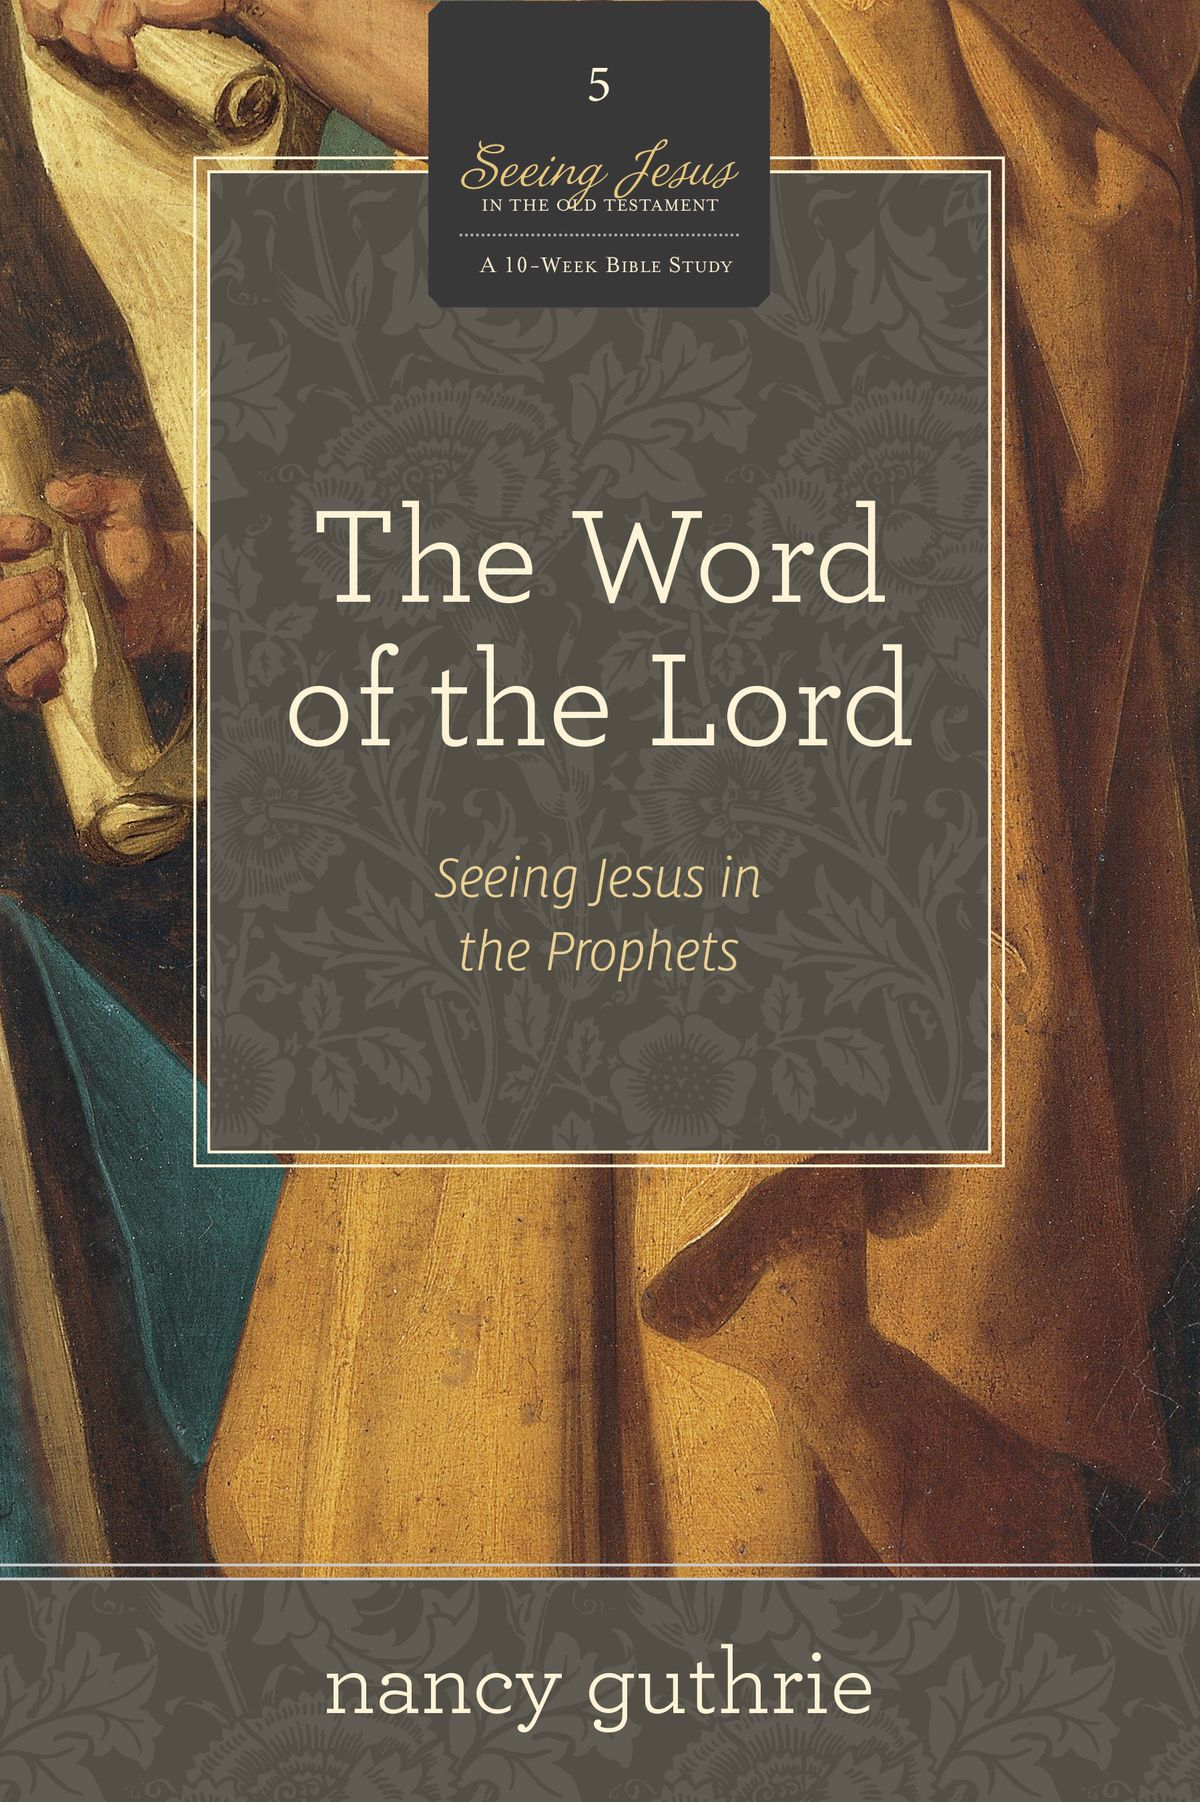 the-word-of-the-lord-a-10-week-bible-study.jpg